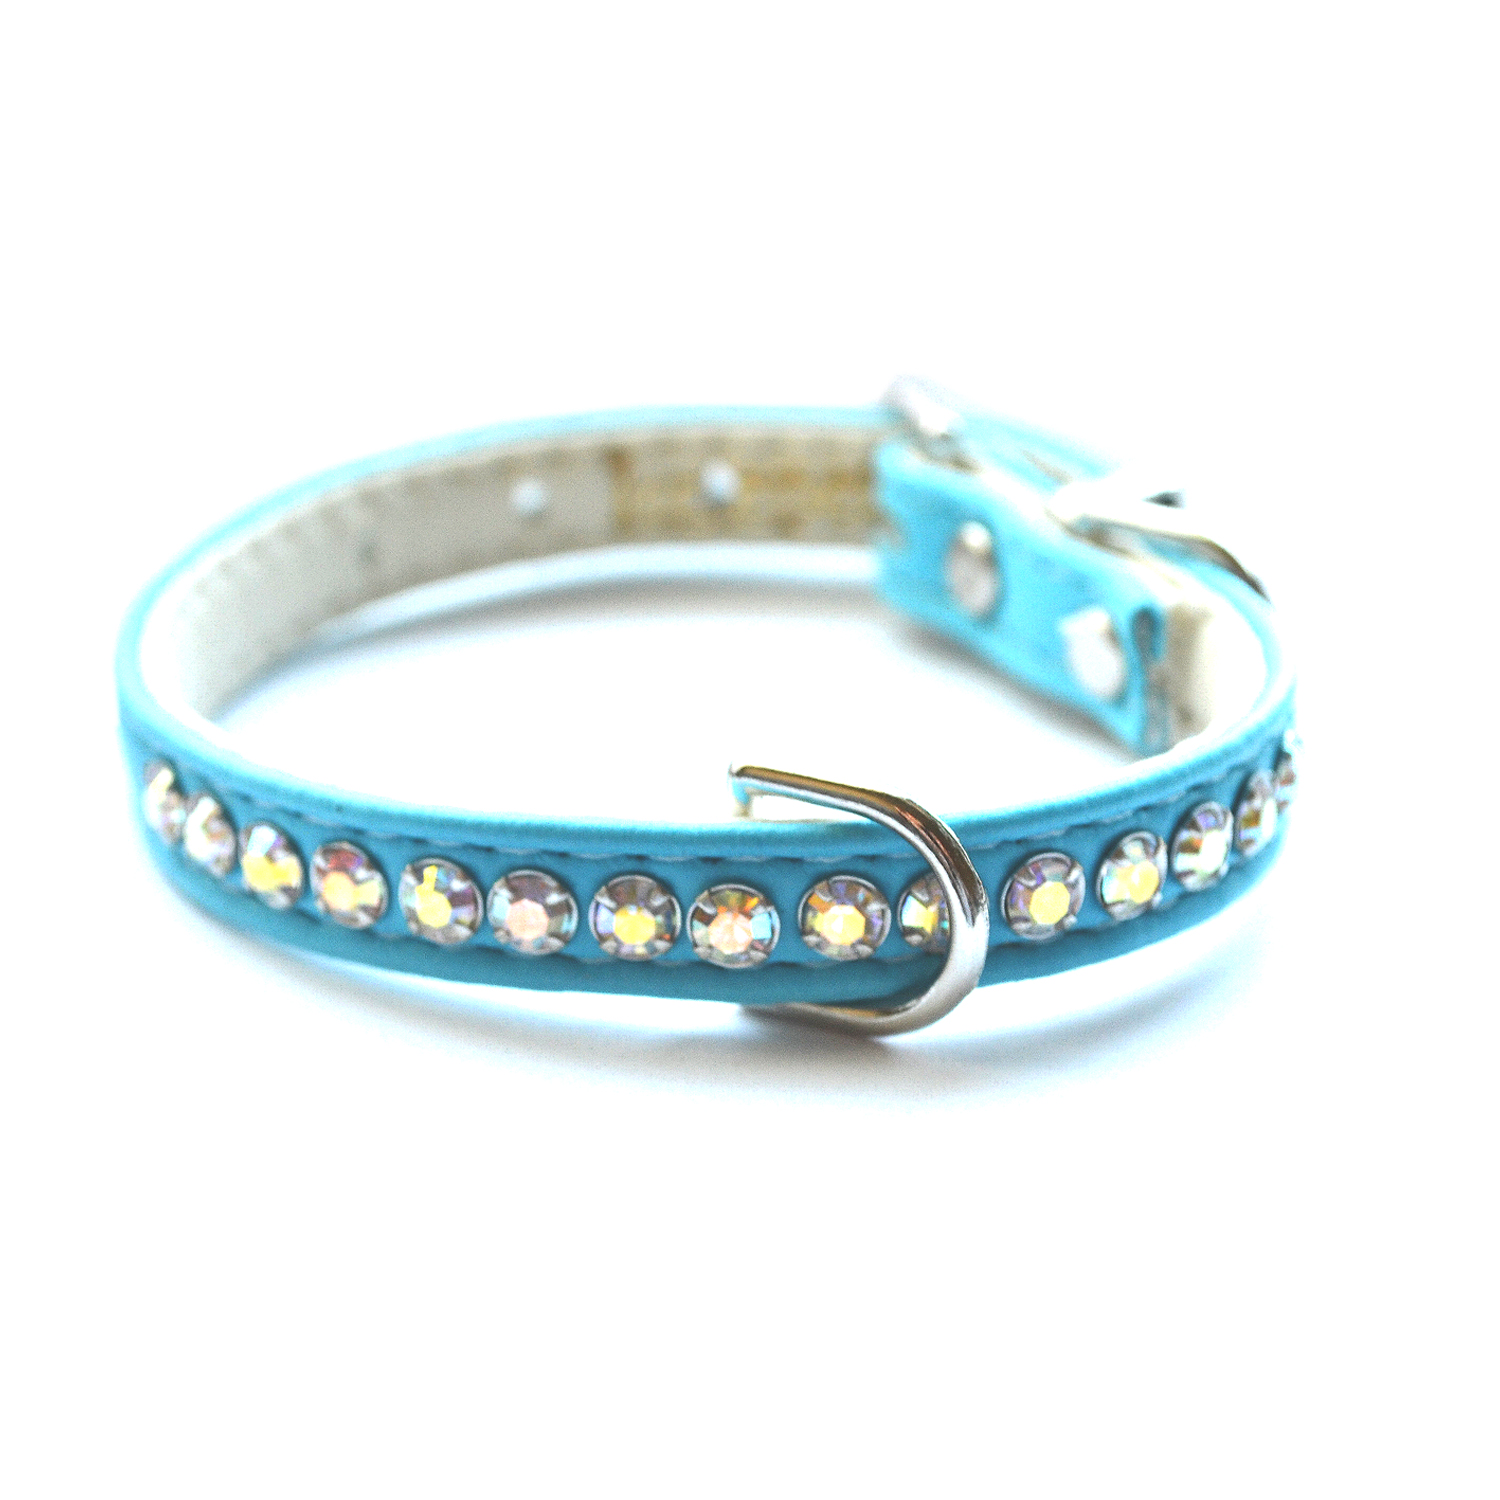 designer dog collars - photo #14